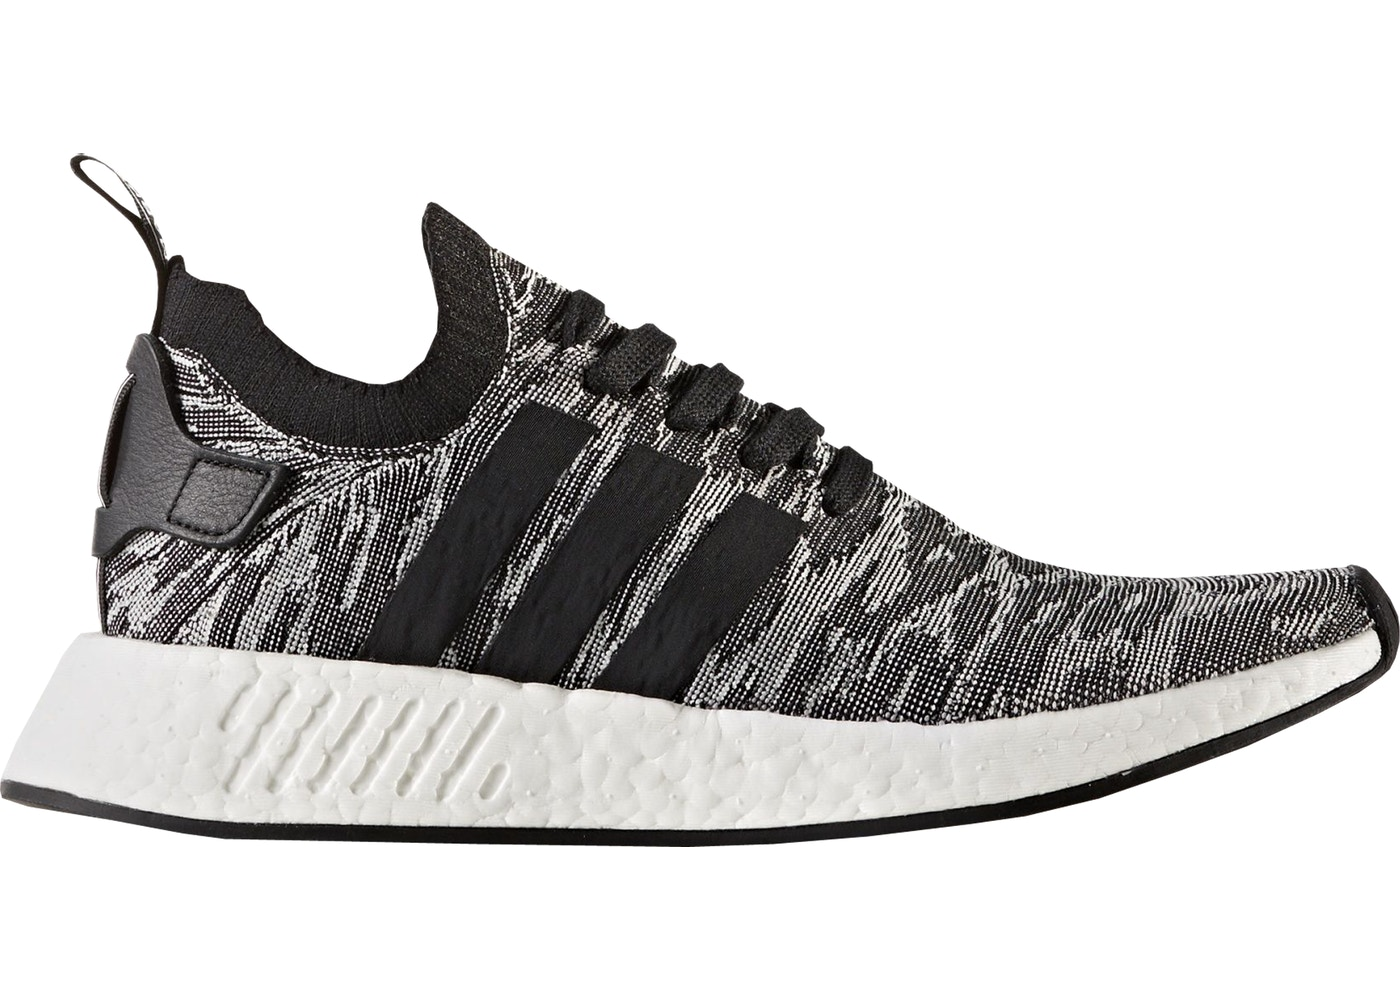 detailed look 0ffef 97890 adidas NMD R2 Black White Future Harvest